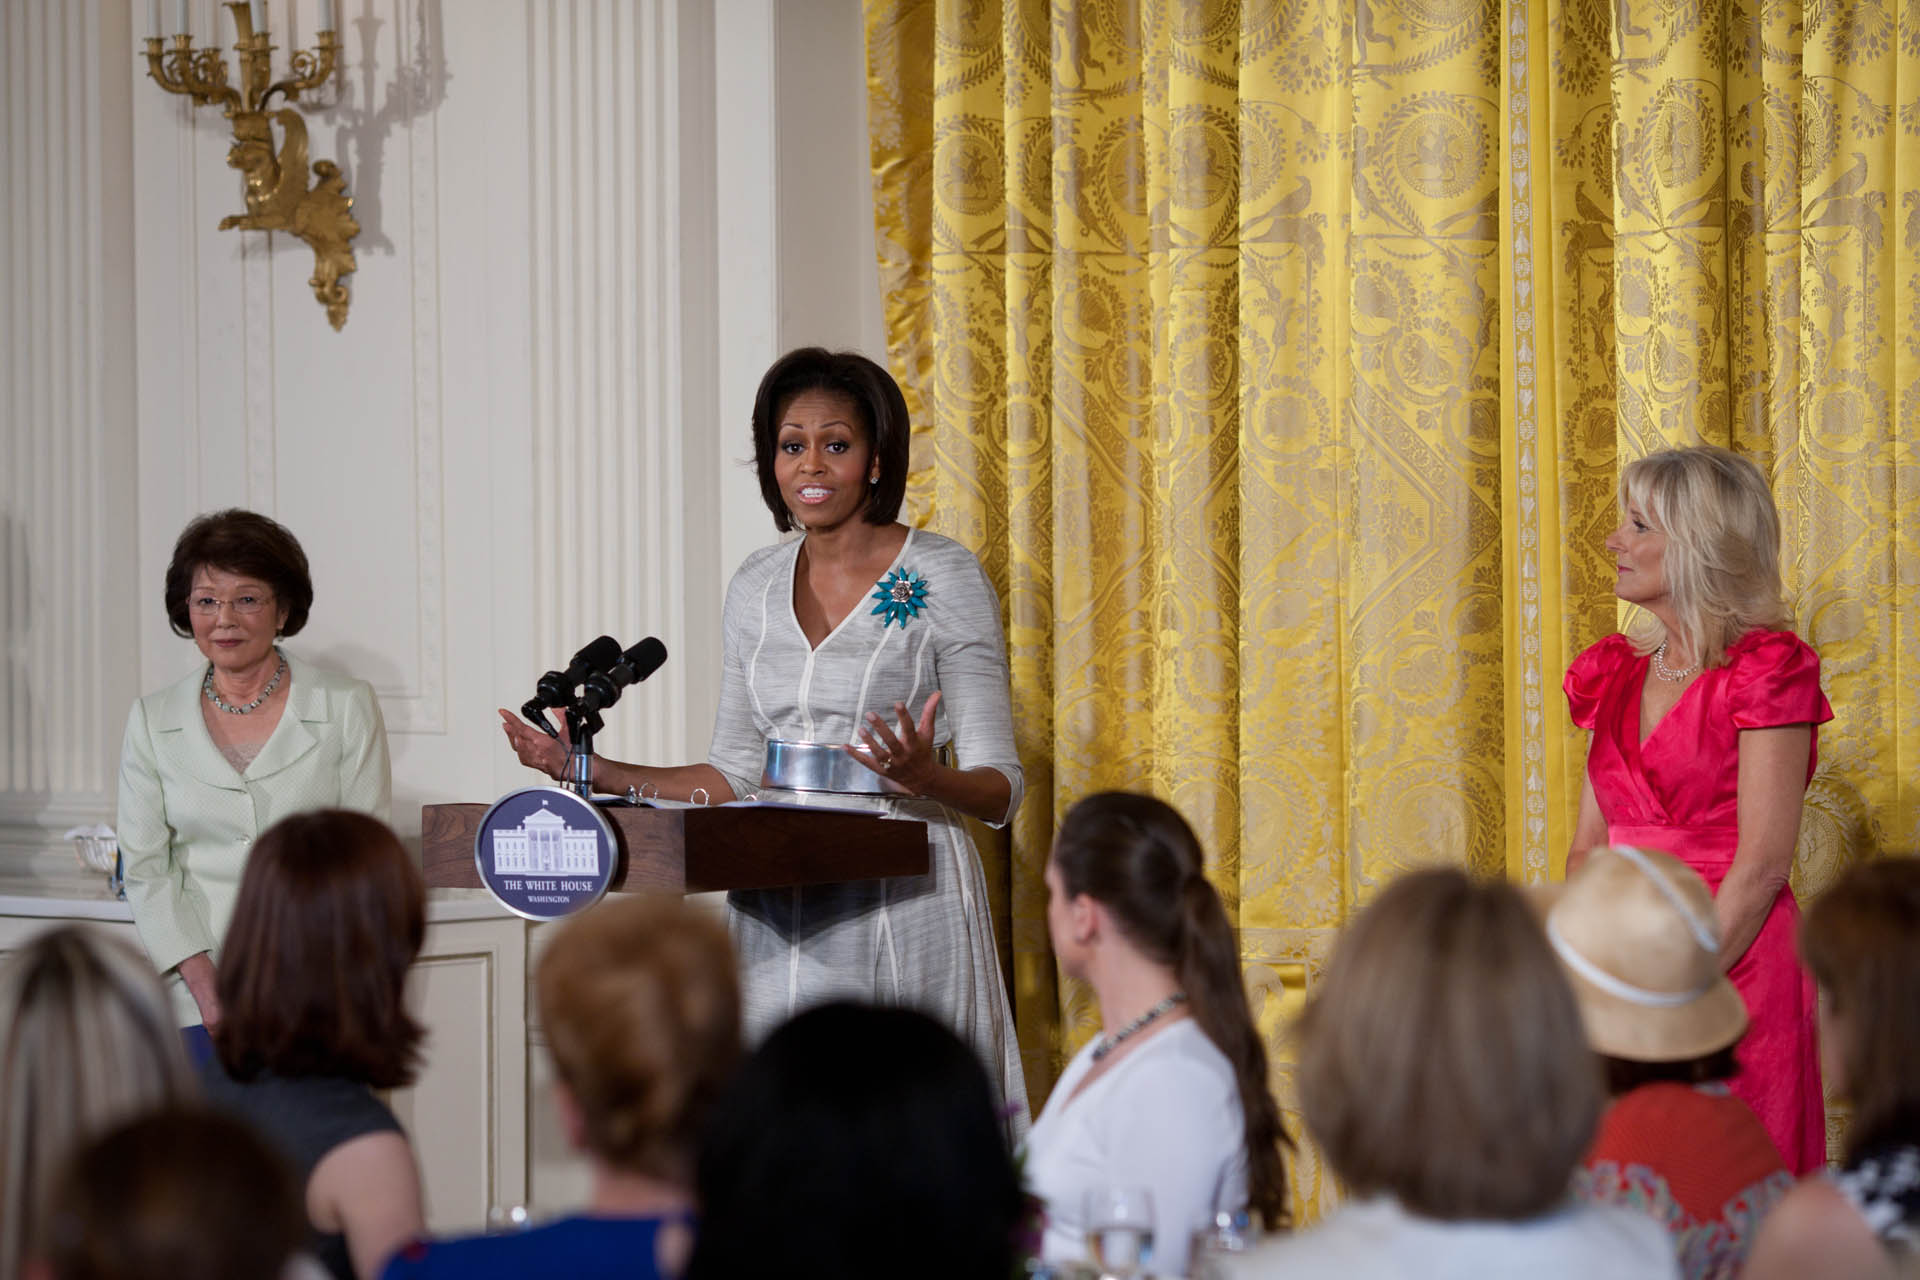 First Lady Michelle Obama addresses military spouses, relatives and friends in the East Room of the White House for a Mother's Day Tea Party